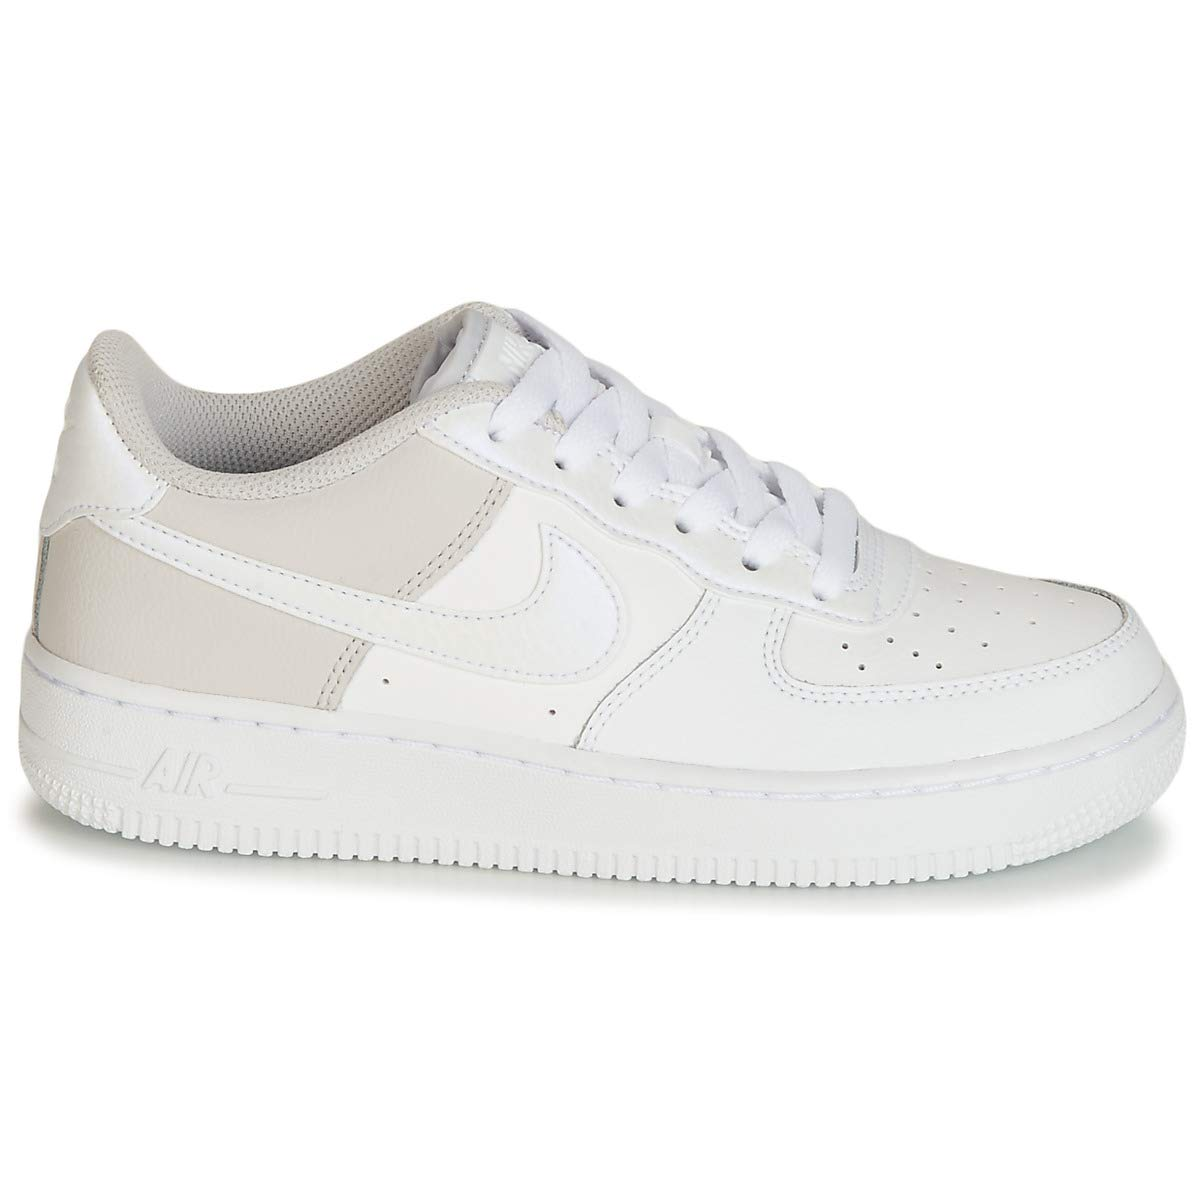 Chaussures de Basketball Fille Nike Air Force 1 GS